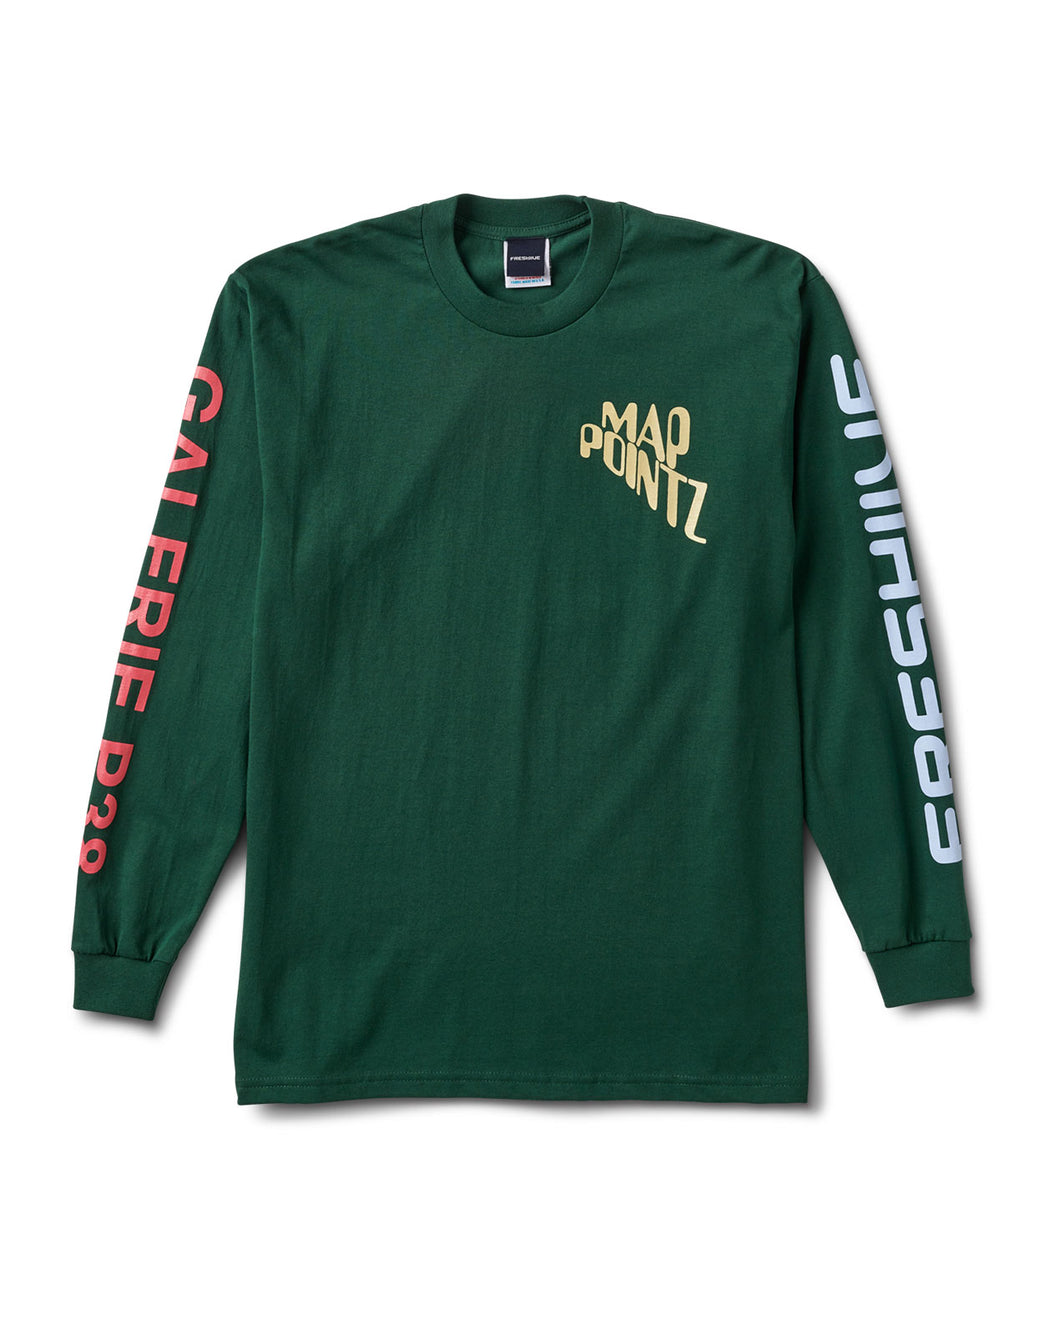 Map Pointz Paris Collab Tee Green